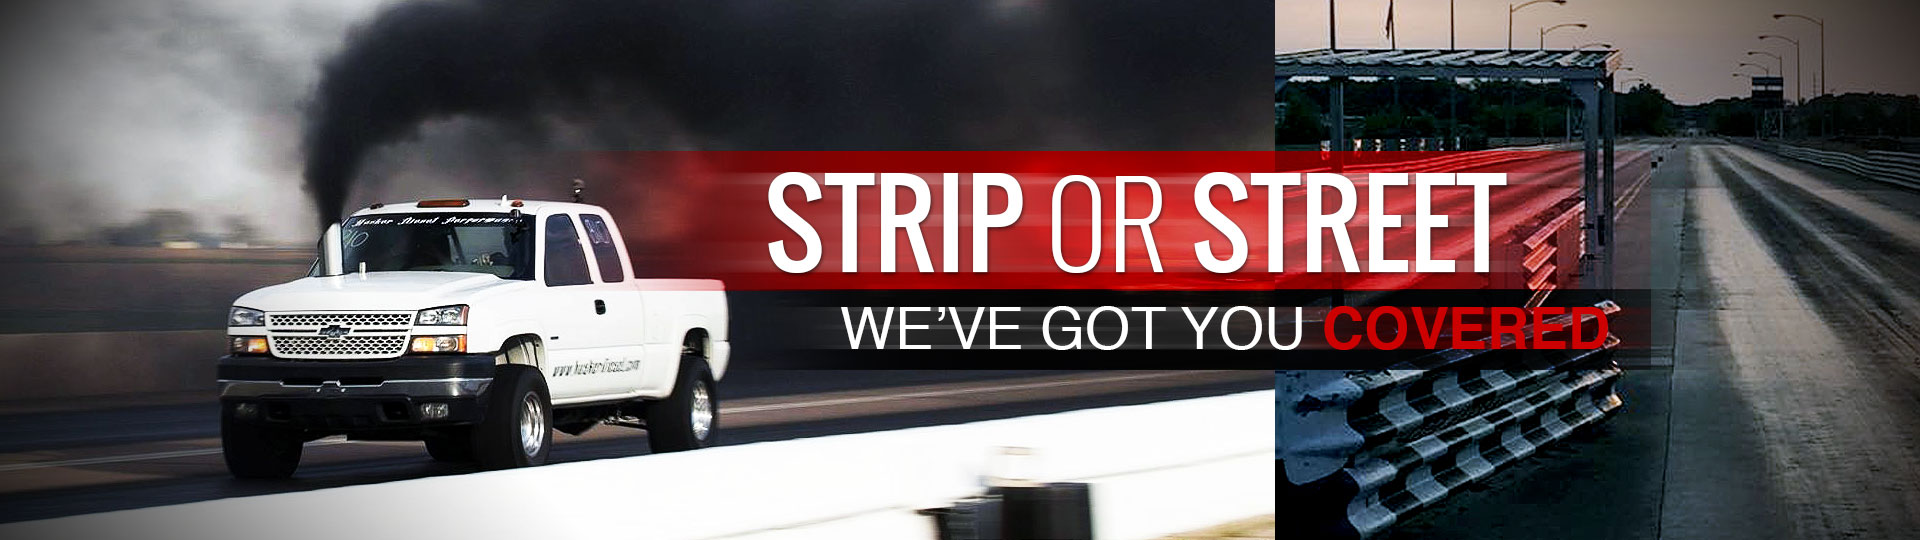 Strip Or Street